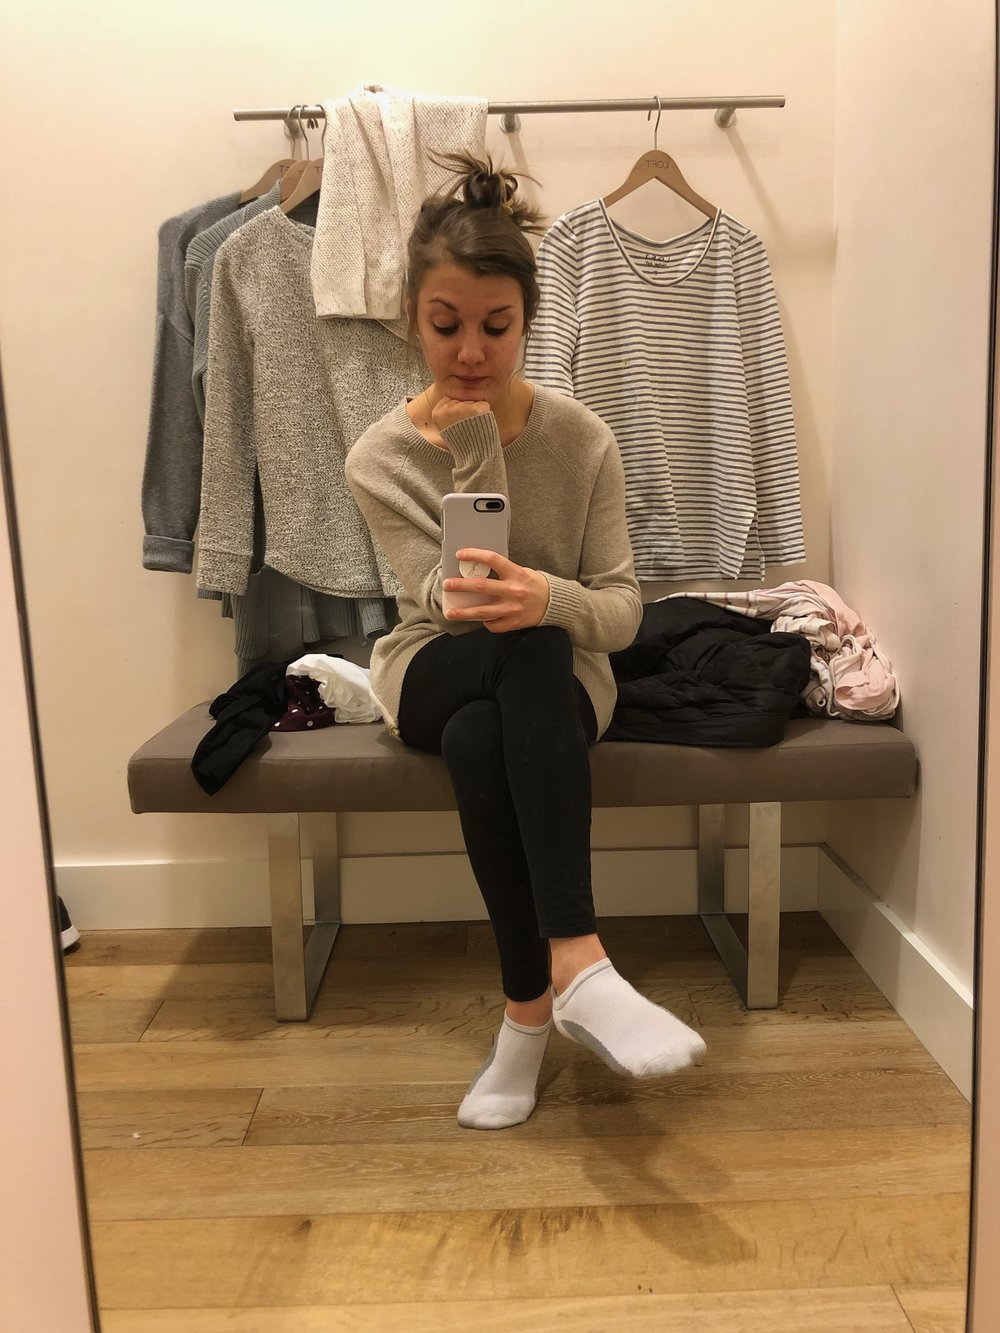 Me taking a break - there was no one waiting for a fitting room, I'm not an asshole.